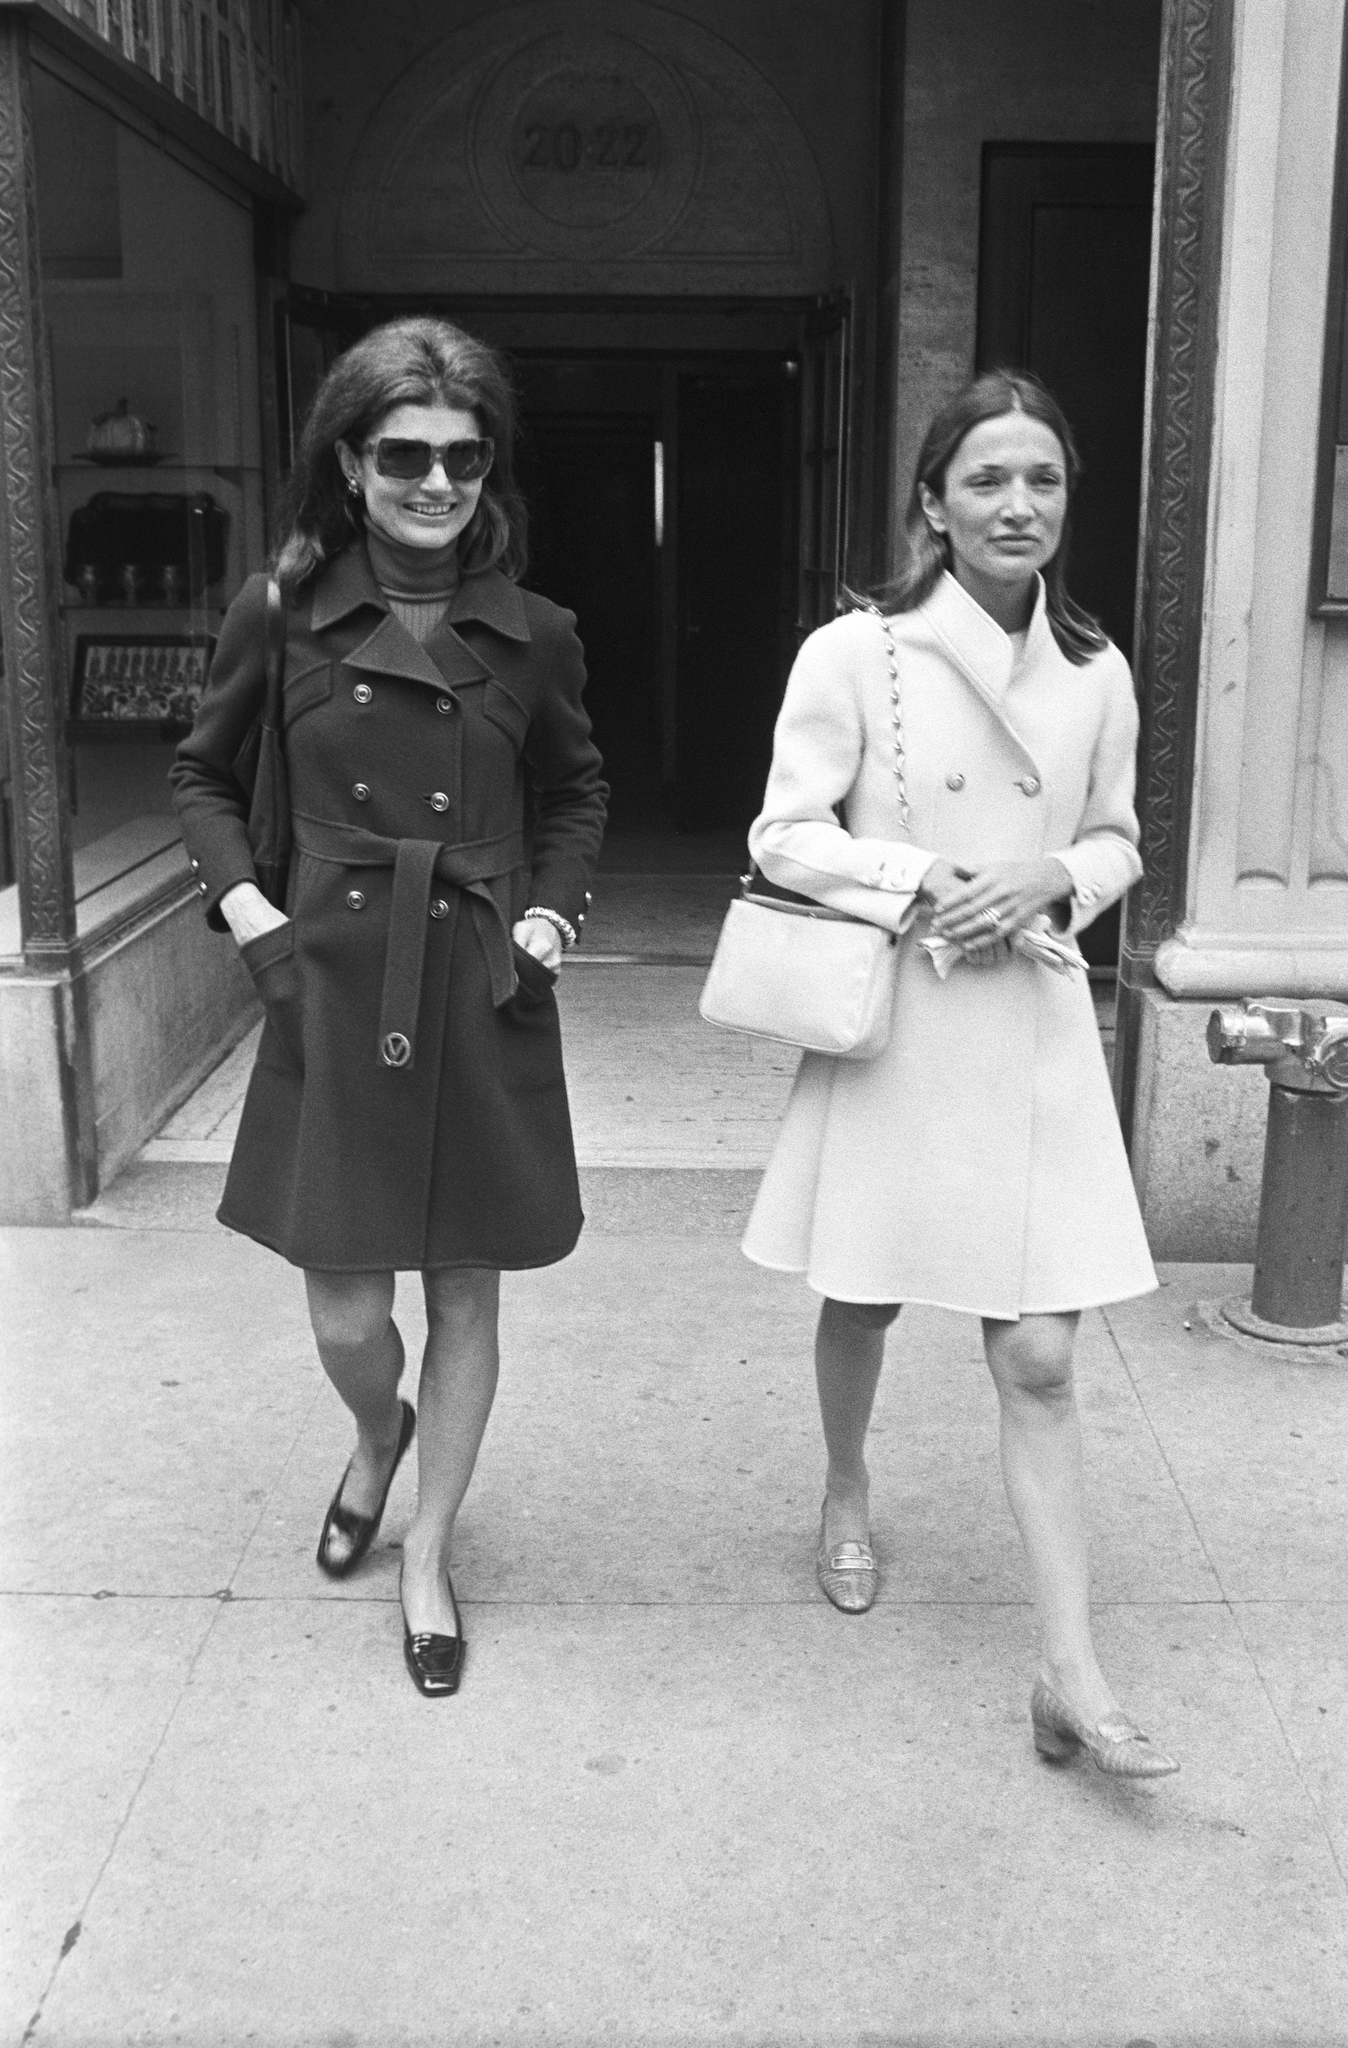 Jacqueline Kennedy Onassis and her sister interior designer and socialite Lee Radziwill exit Maxmillian's on May 18, 1970.